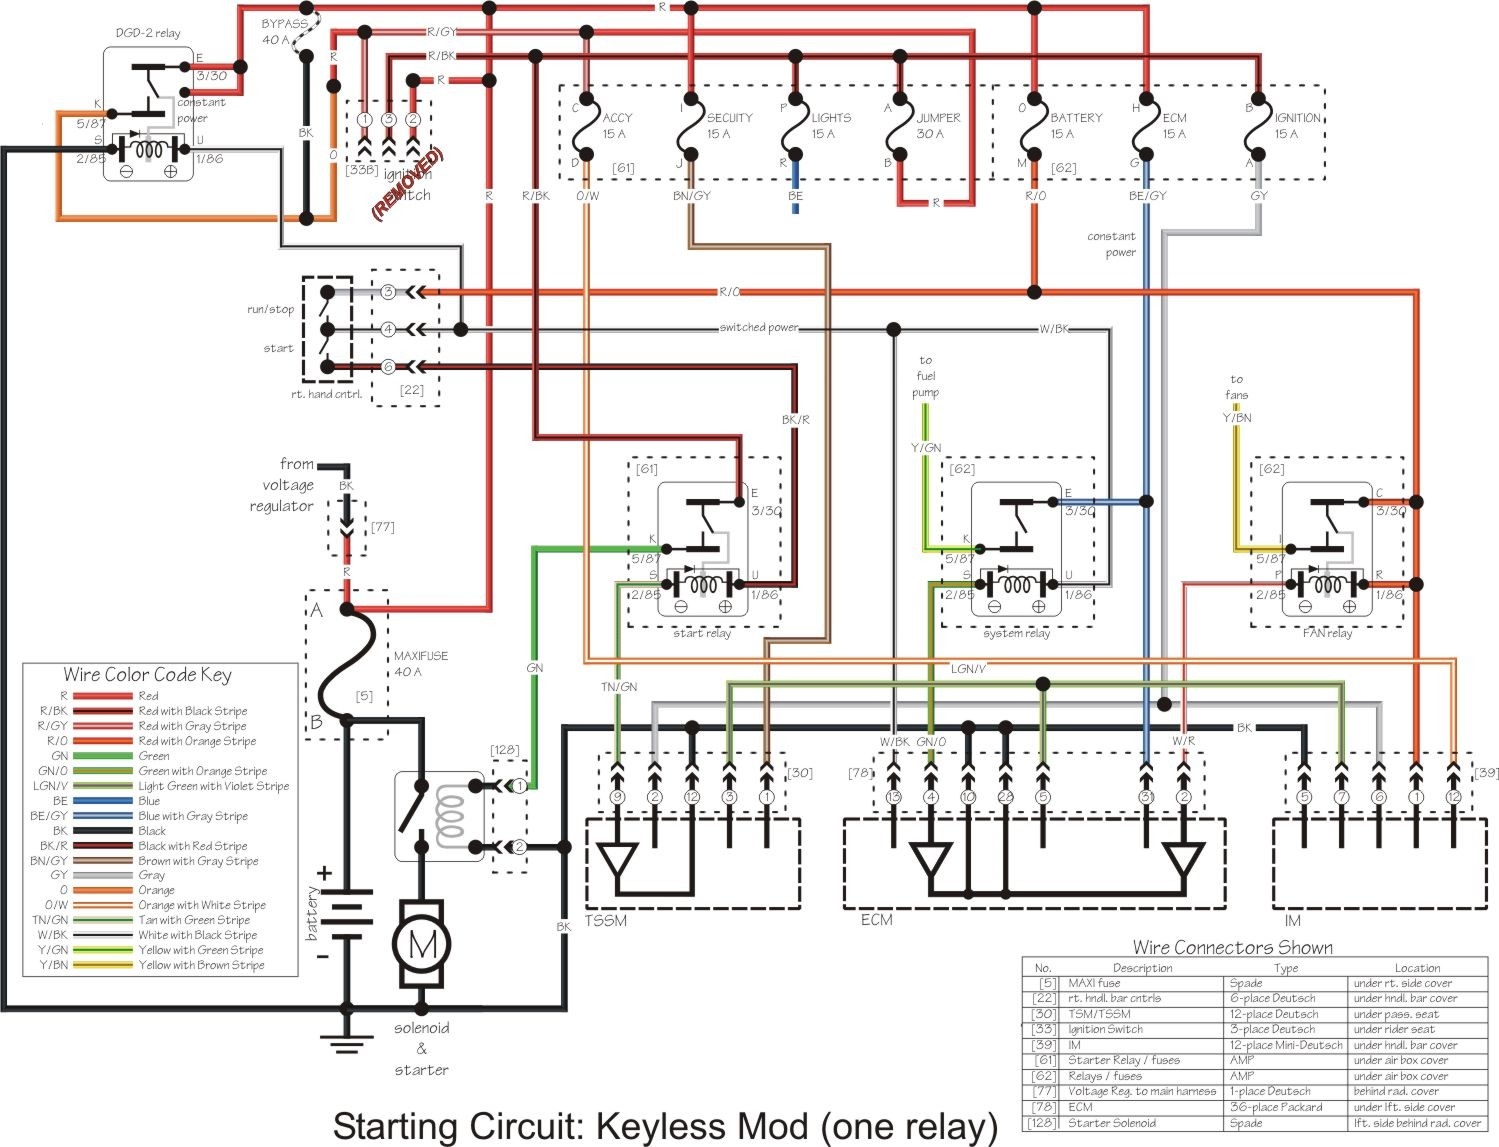 Ignition Wiring Diagram 1130cc The 1 Harley Davidson V Rod And Power mander 3